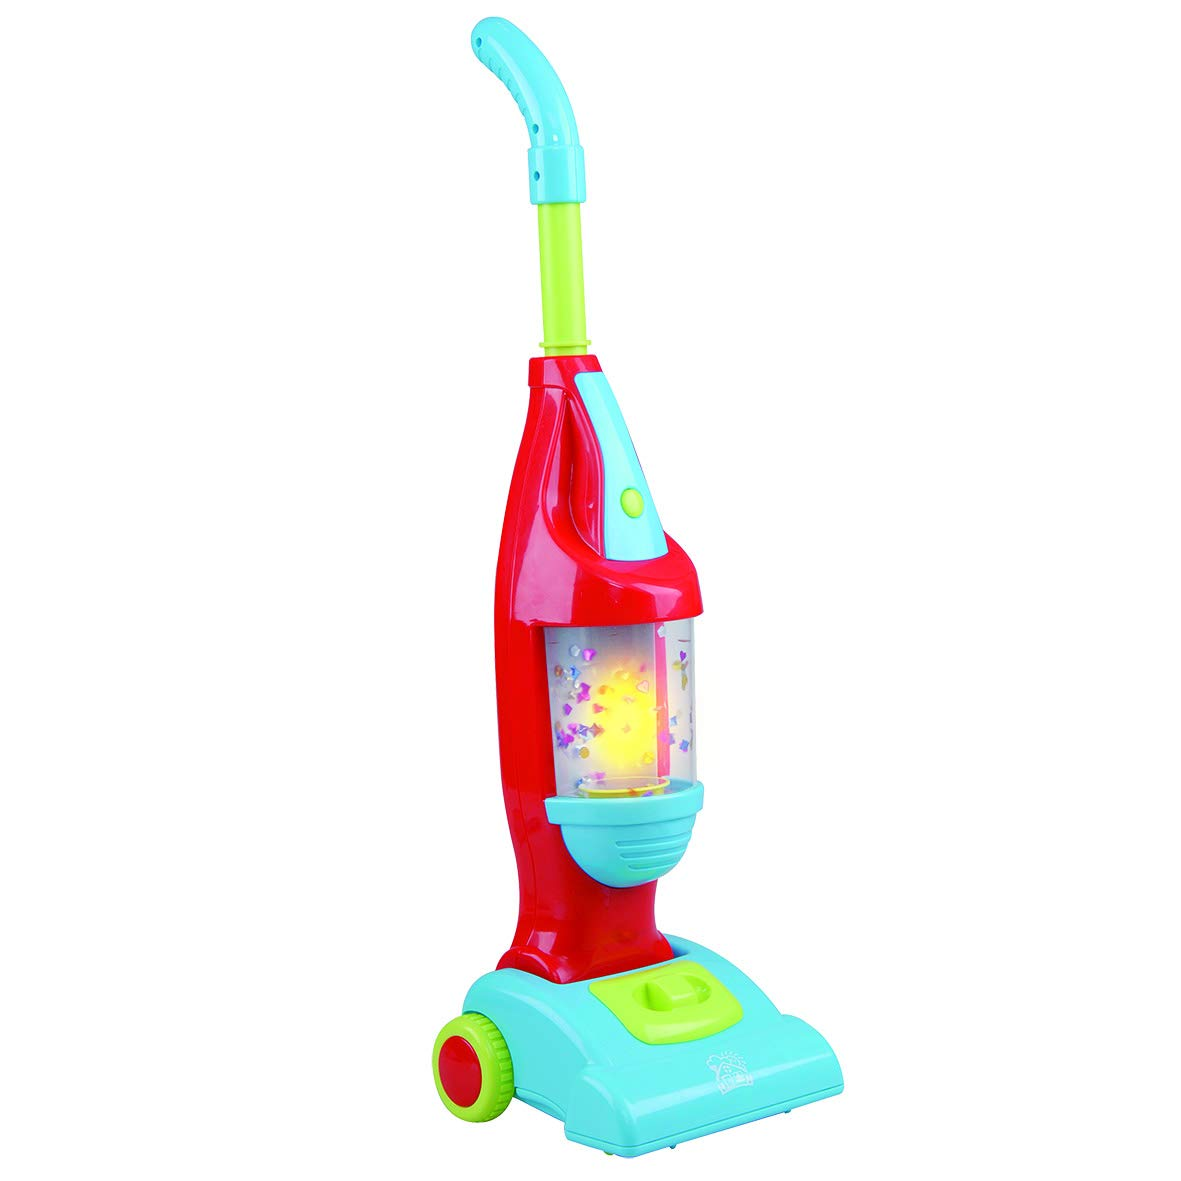 Pretend Play My Light Up Playset Cleaning Vacuum for Toddlers & Kids with Sound Effects Trolley Cart with Real Suction by PlayGo